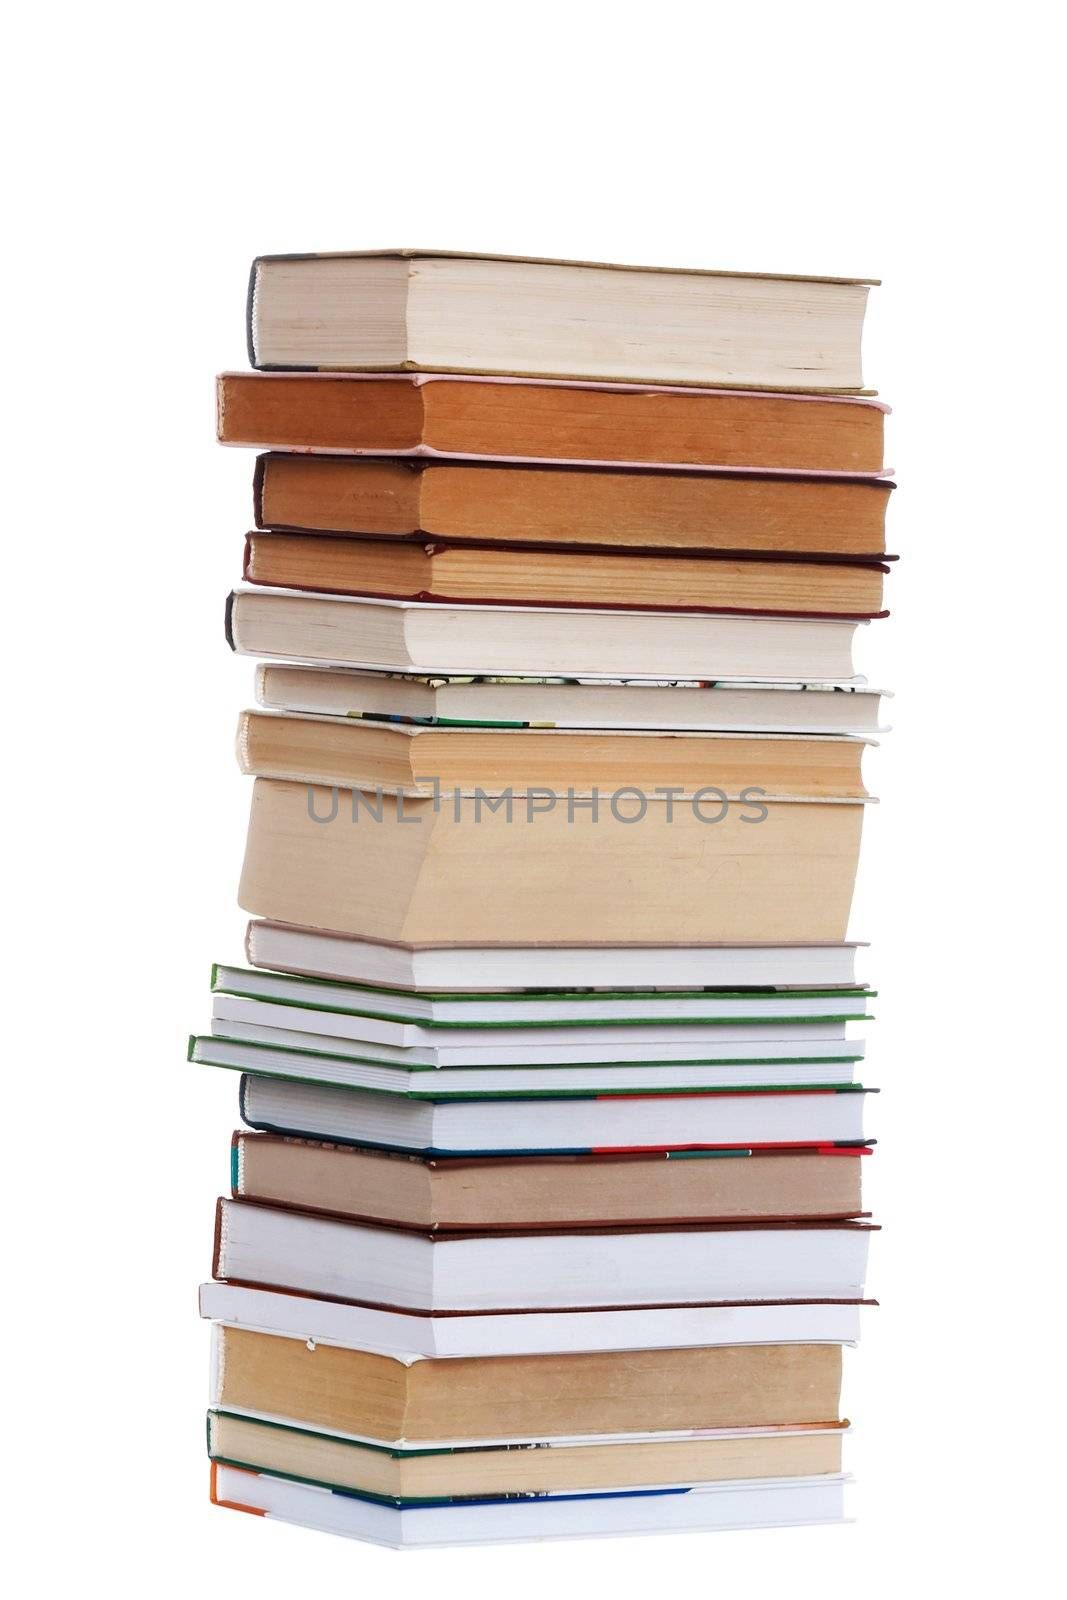 An image of many books. Isolated image.